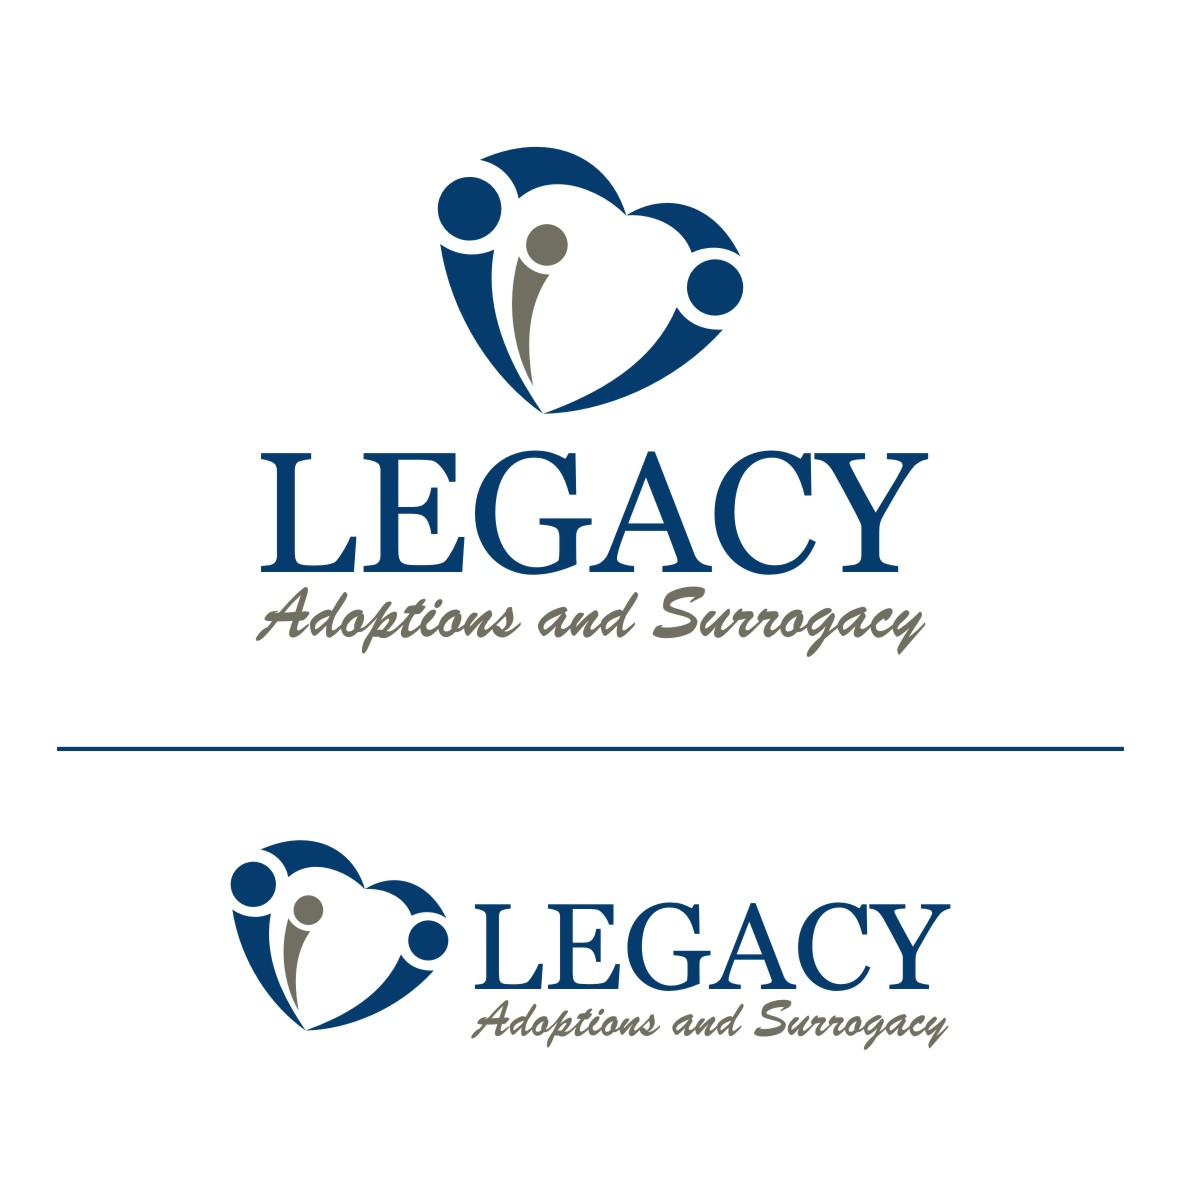 Logo Design by arteo_design - Entry No. 107 in the Logo Design Contest Legacy Adoptions and Surrogacy Logo Design.